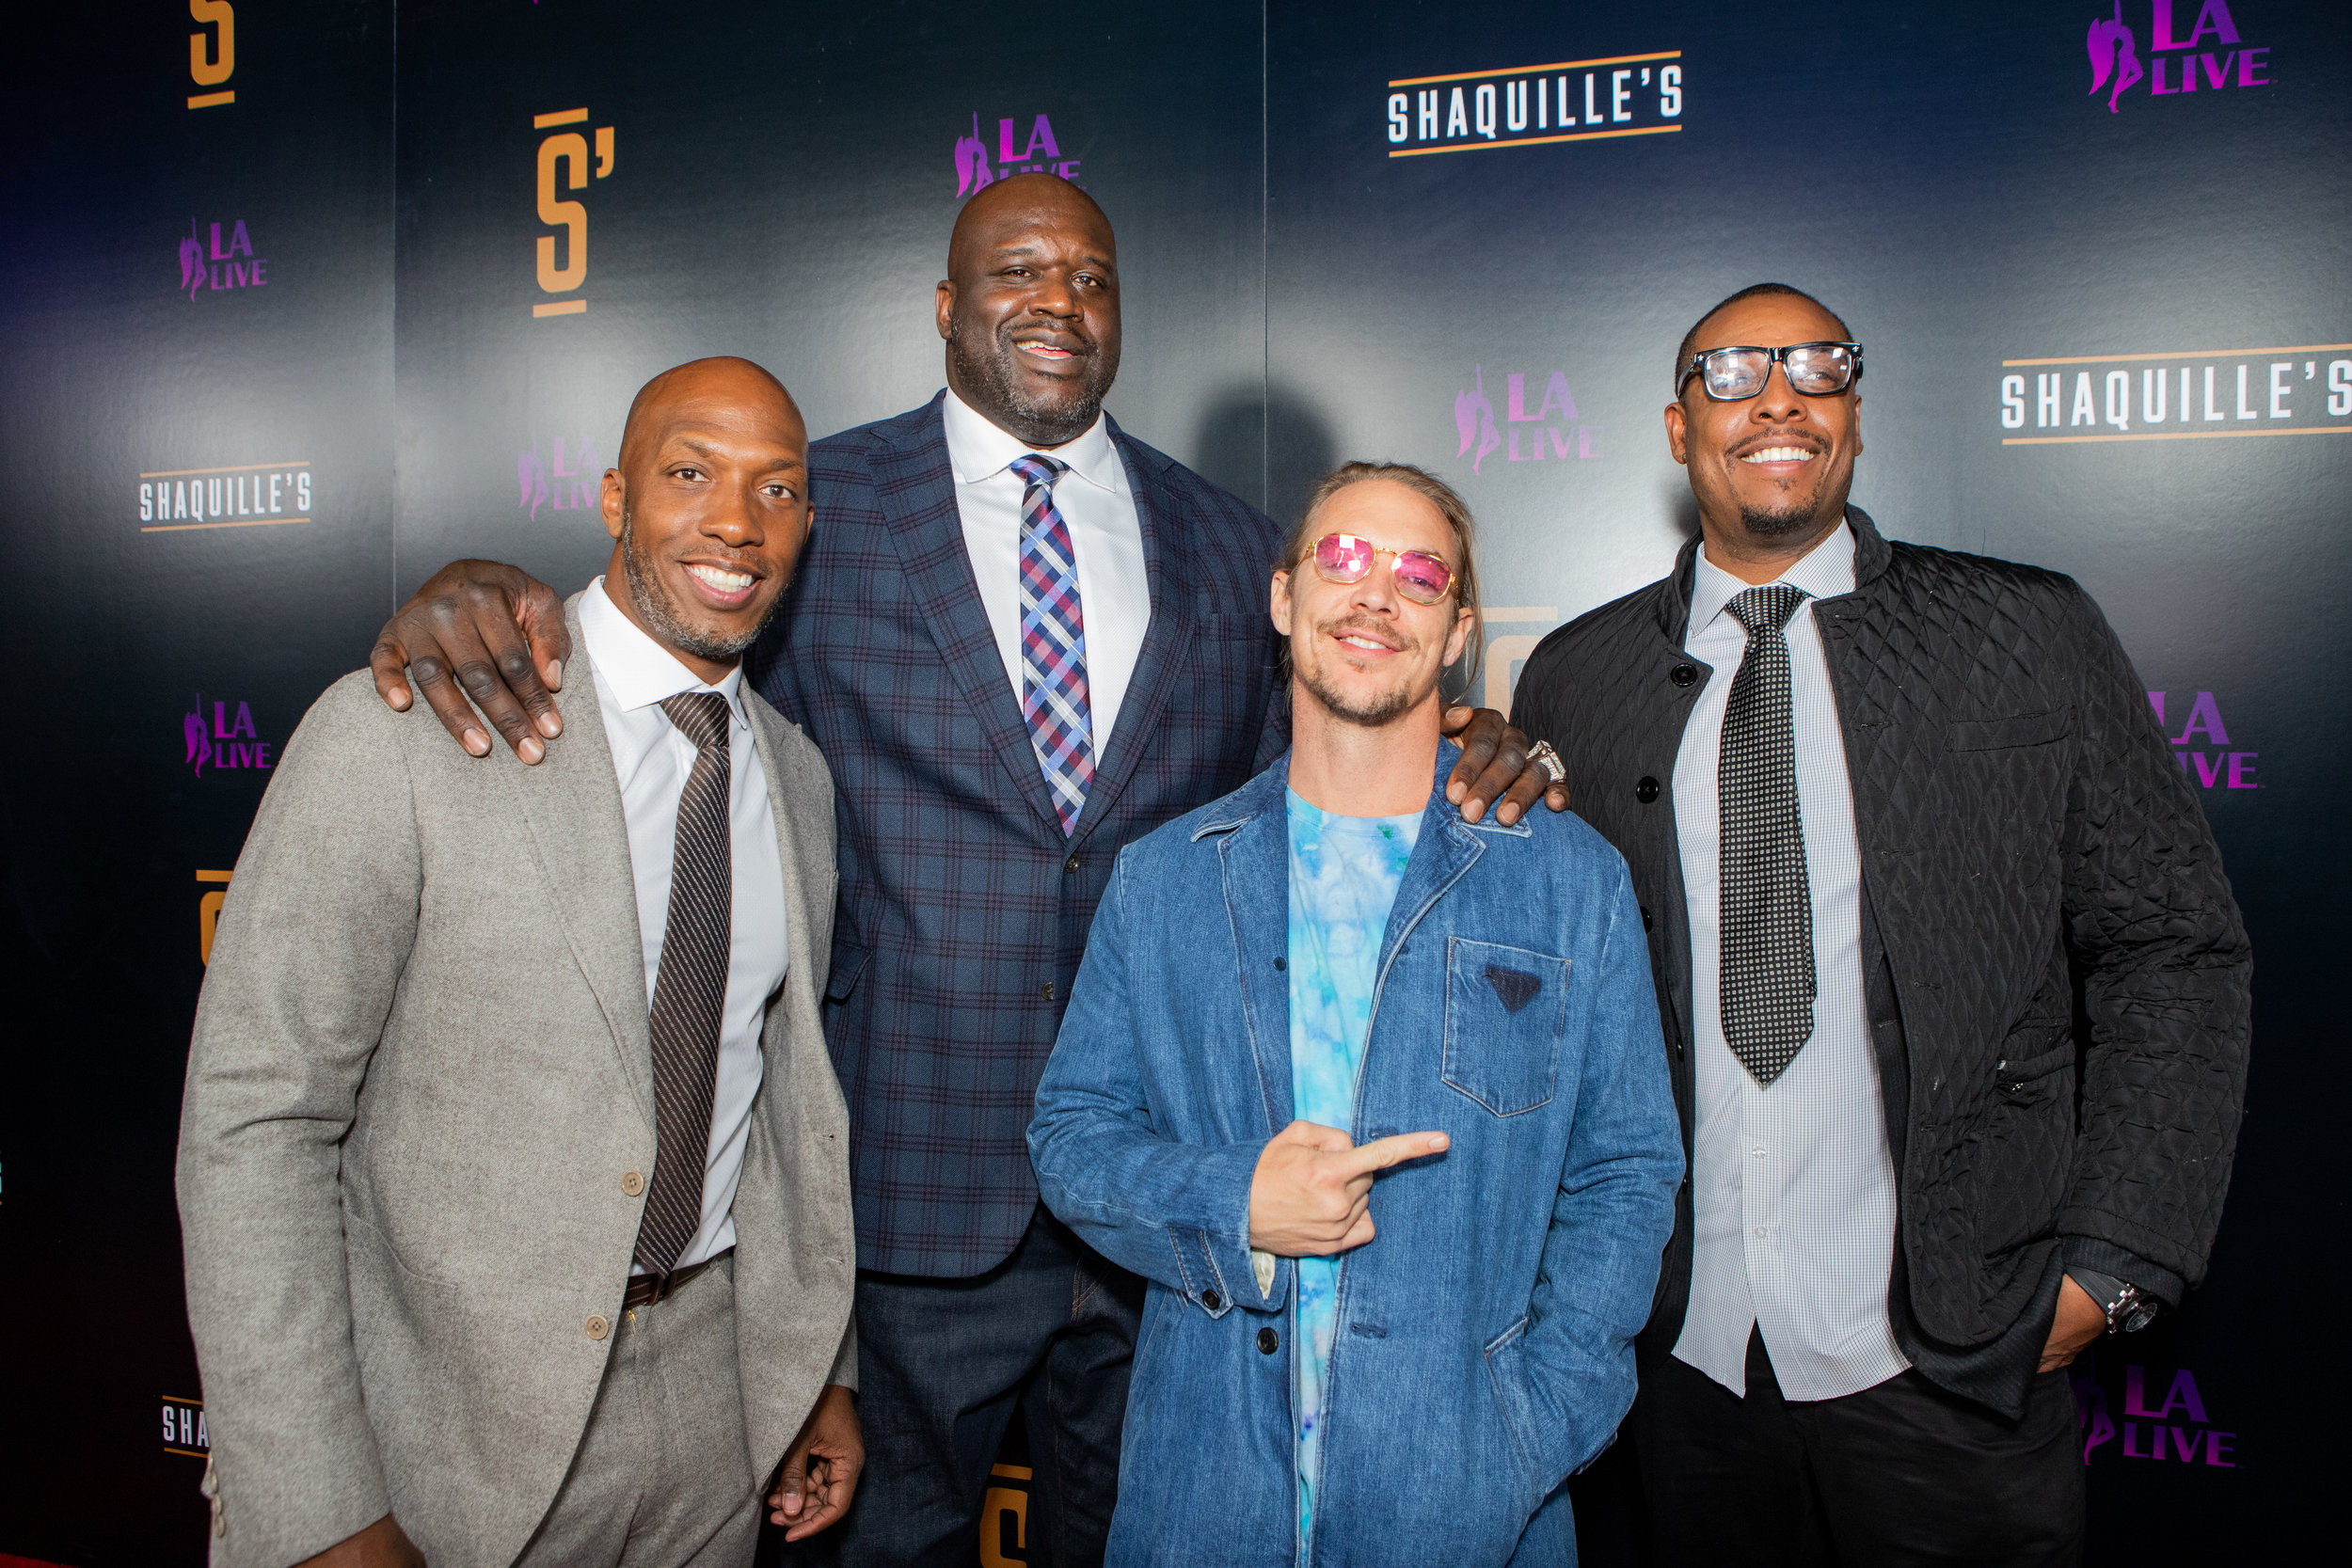 Chauncey Billups, Shaquille O'Neal, Diplo and Paul Pierce